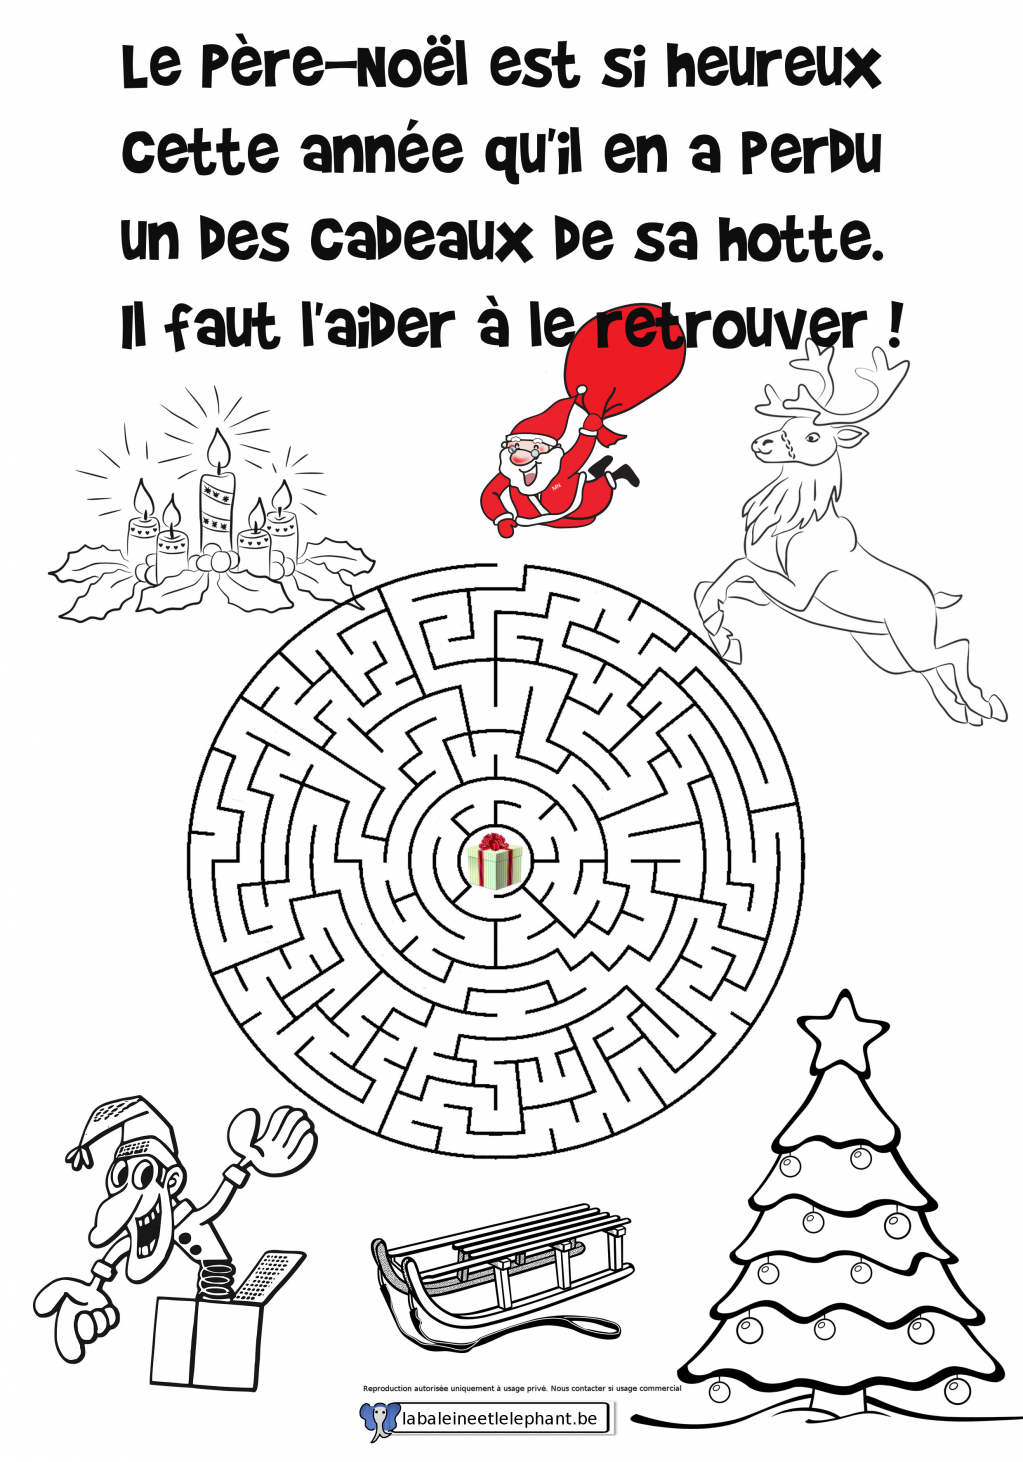 labyrinthe02 coloriage pere_noel